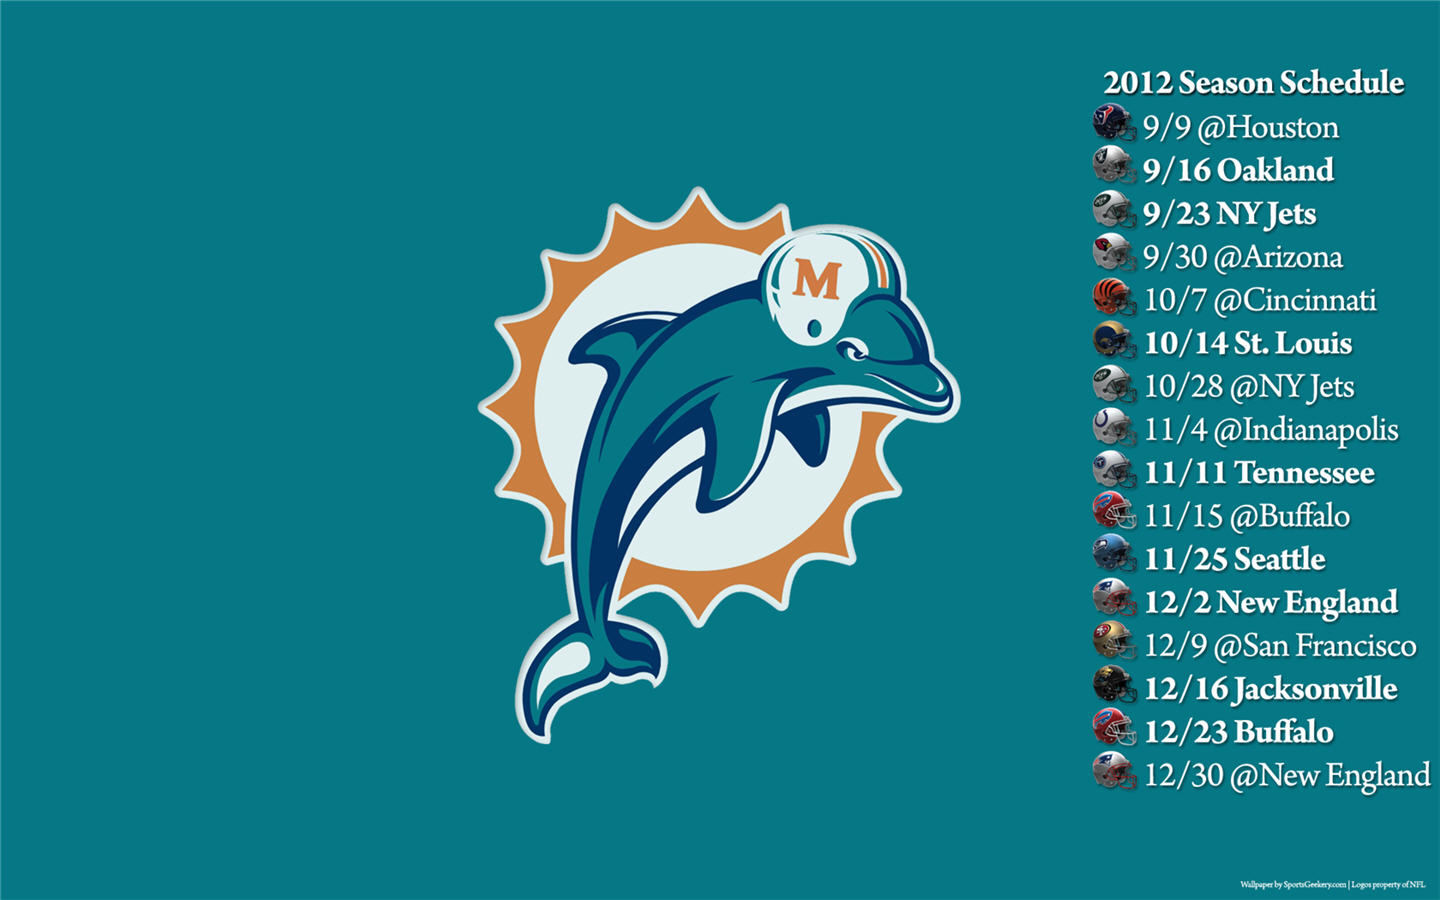 definition wallpapercomphotomiami dolphins logo wallpaper17html 1440x900